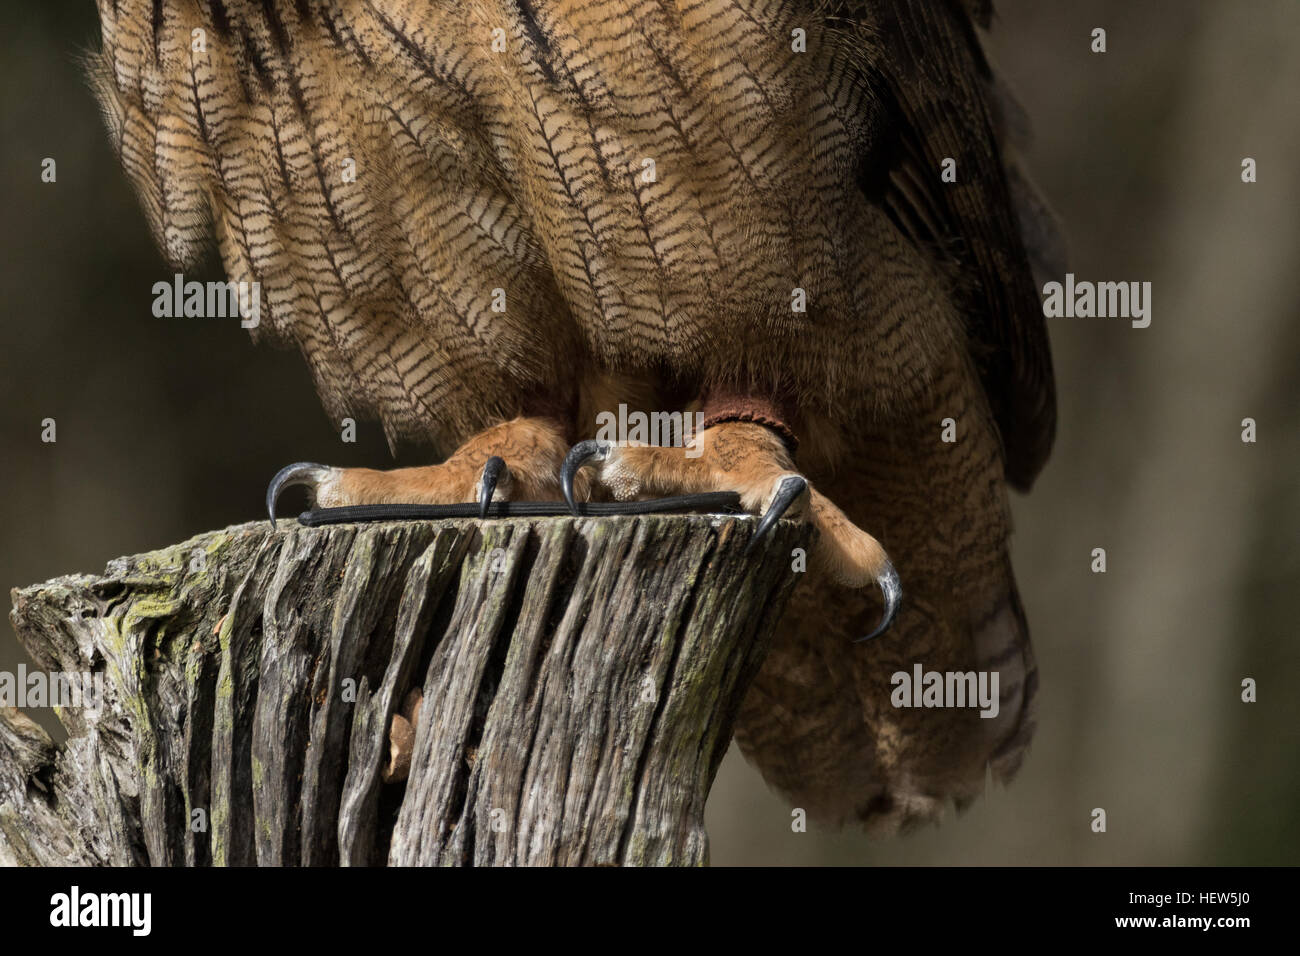 Massive talons on the Eurasian Eagle Owl at the Center for Birds of Prey November 15, 2015 in Awendaw, SC. - Stock Image